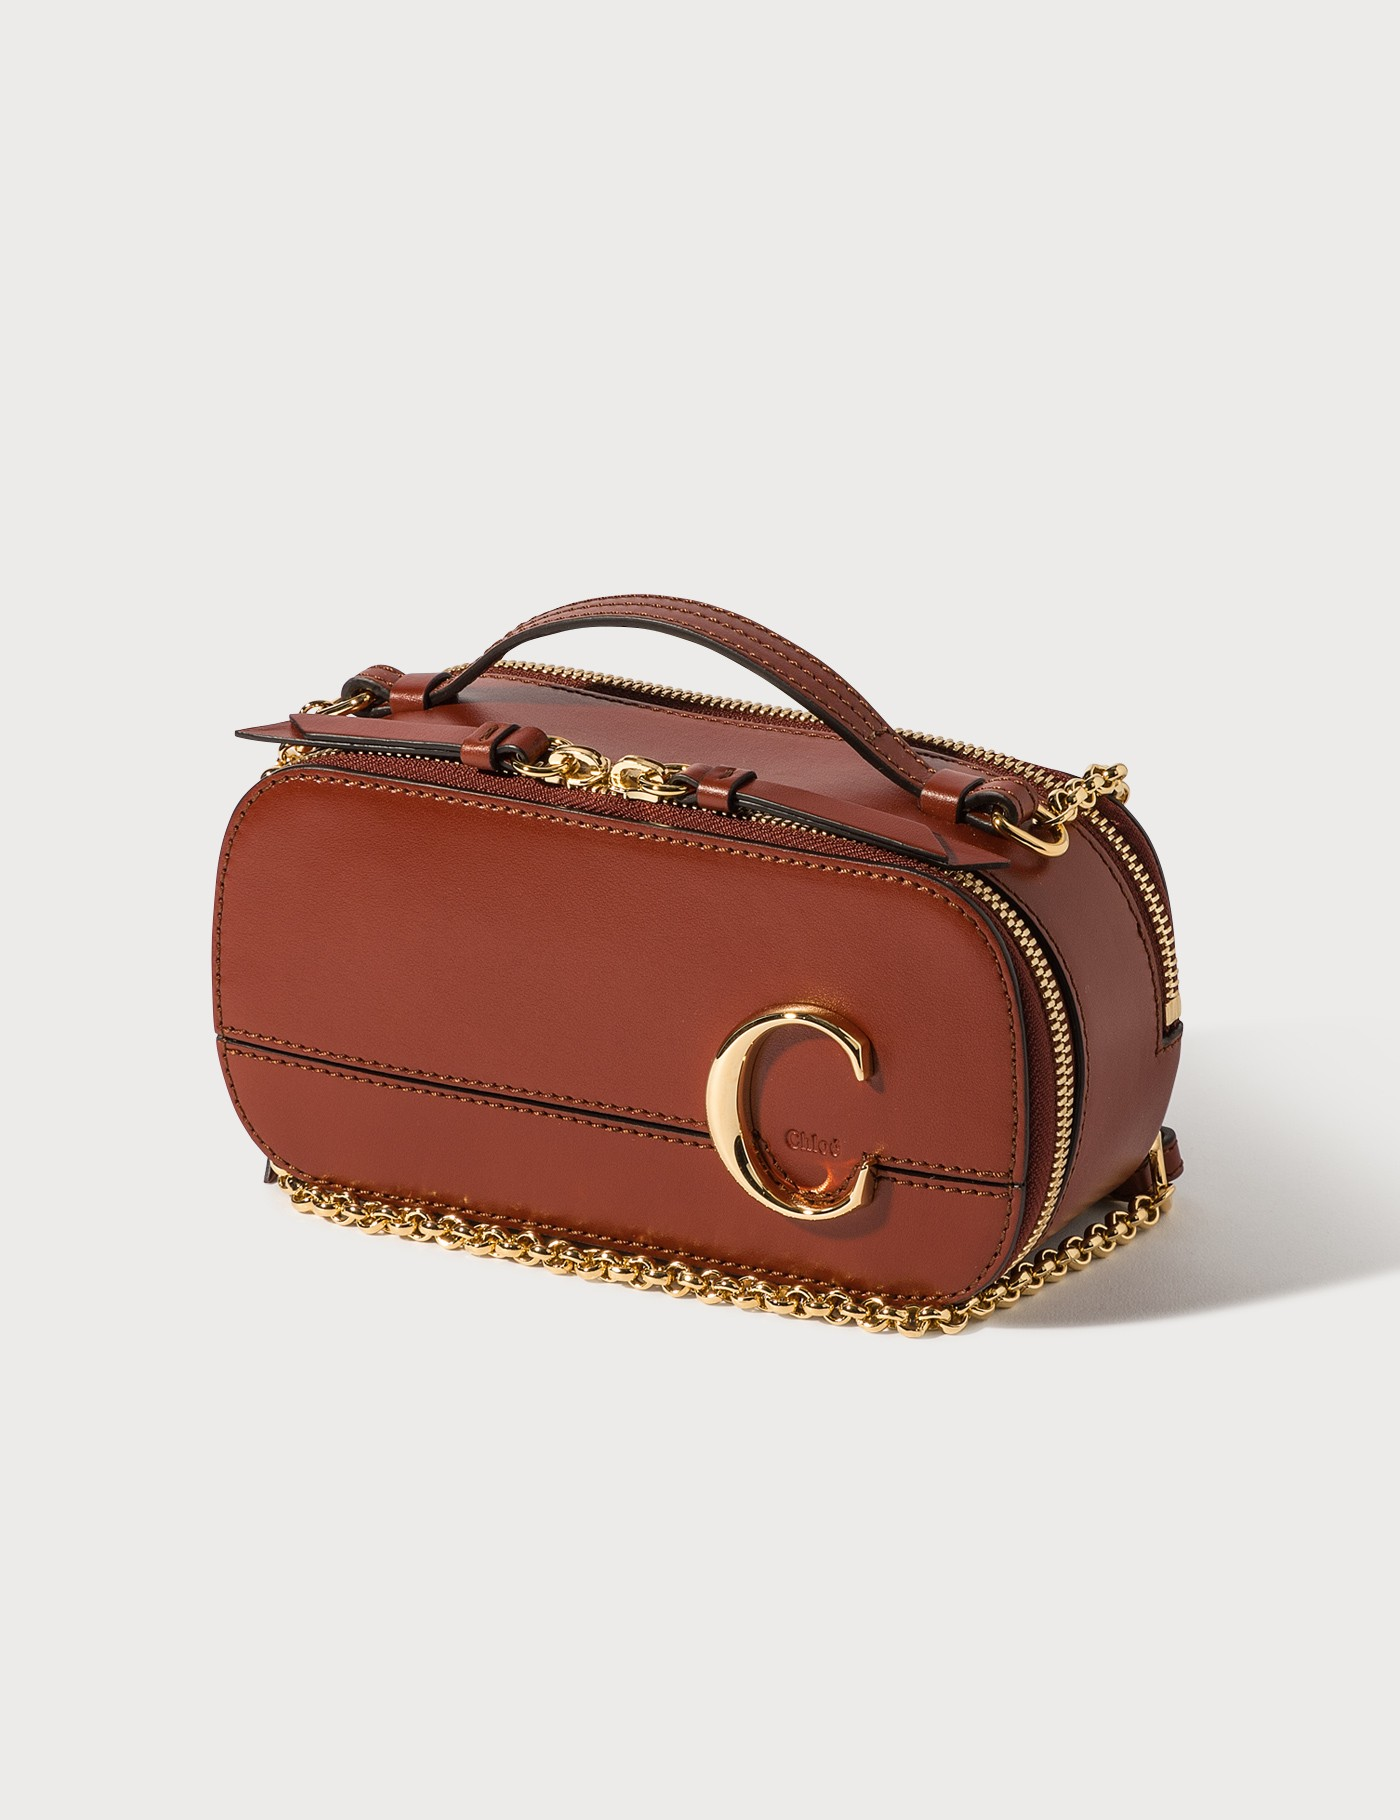 Chloé C MINI VANITY BAG